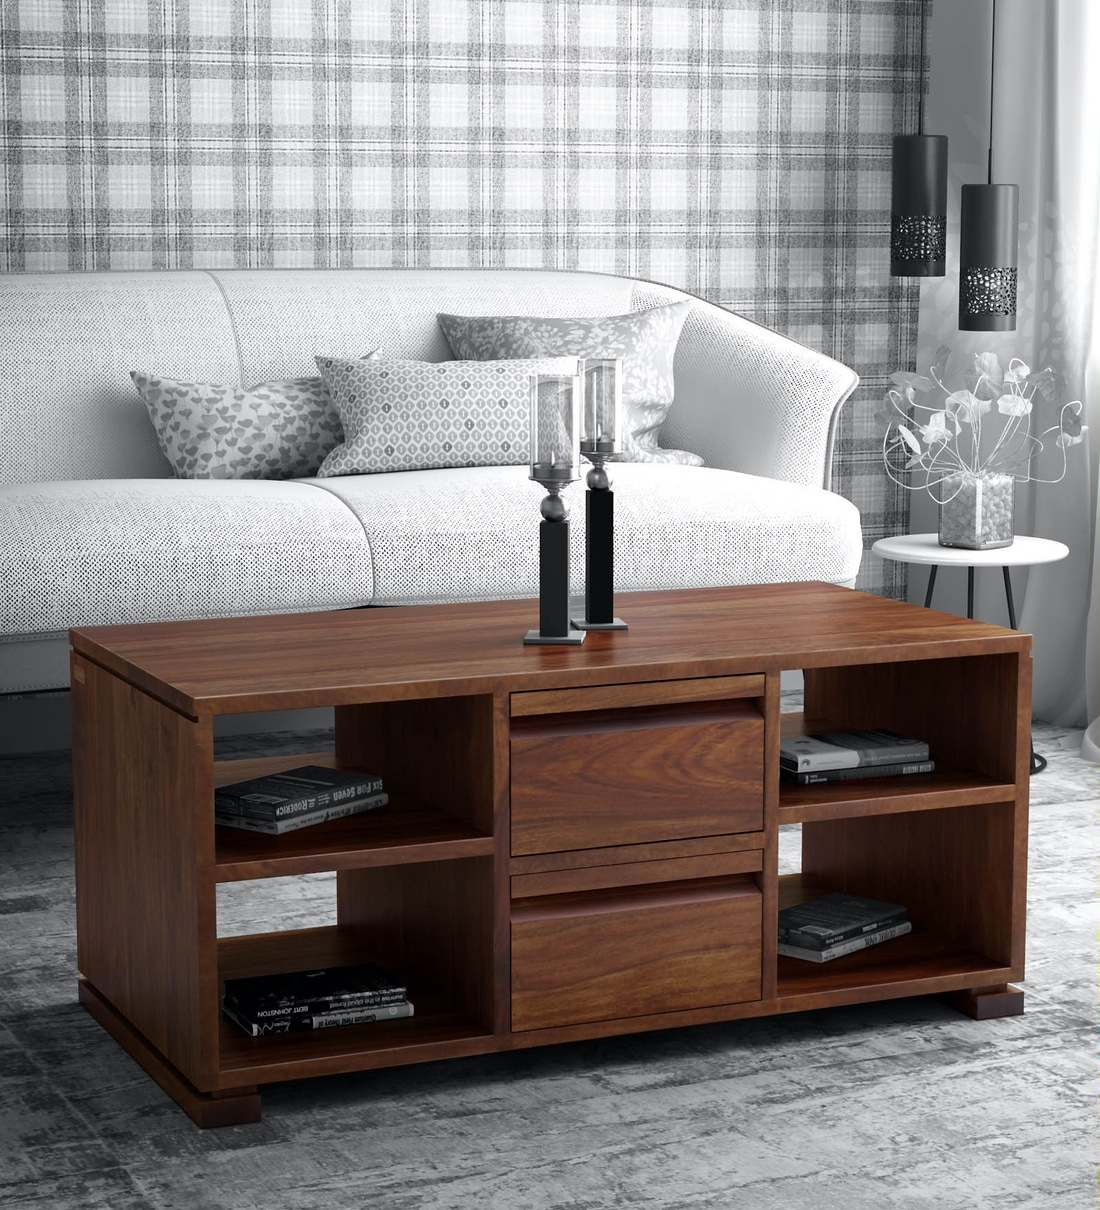 Buy Segur Solid Wood Coffee Table in Provincial Teak ...